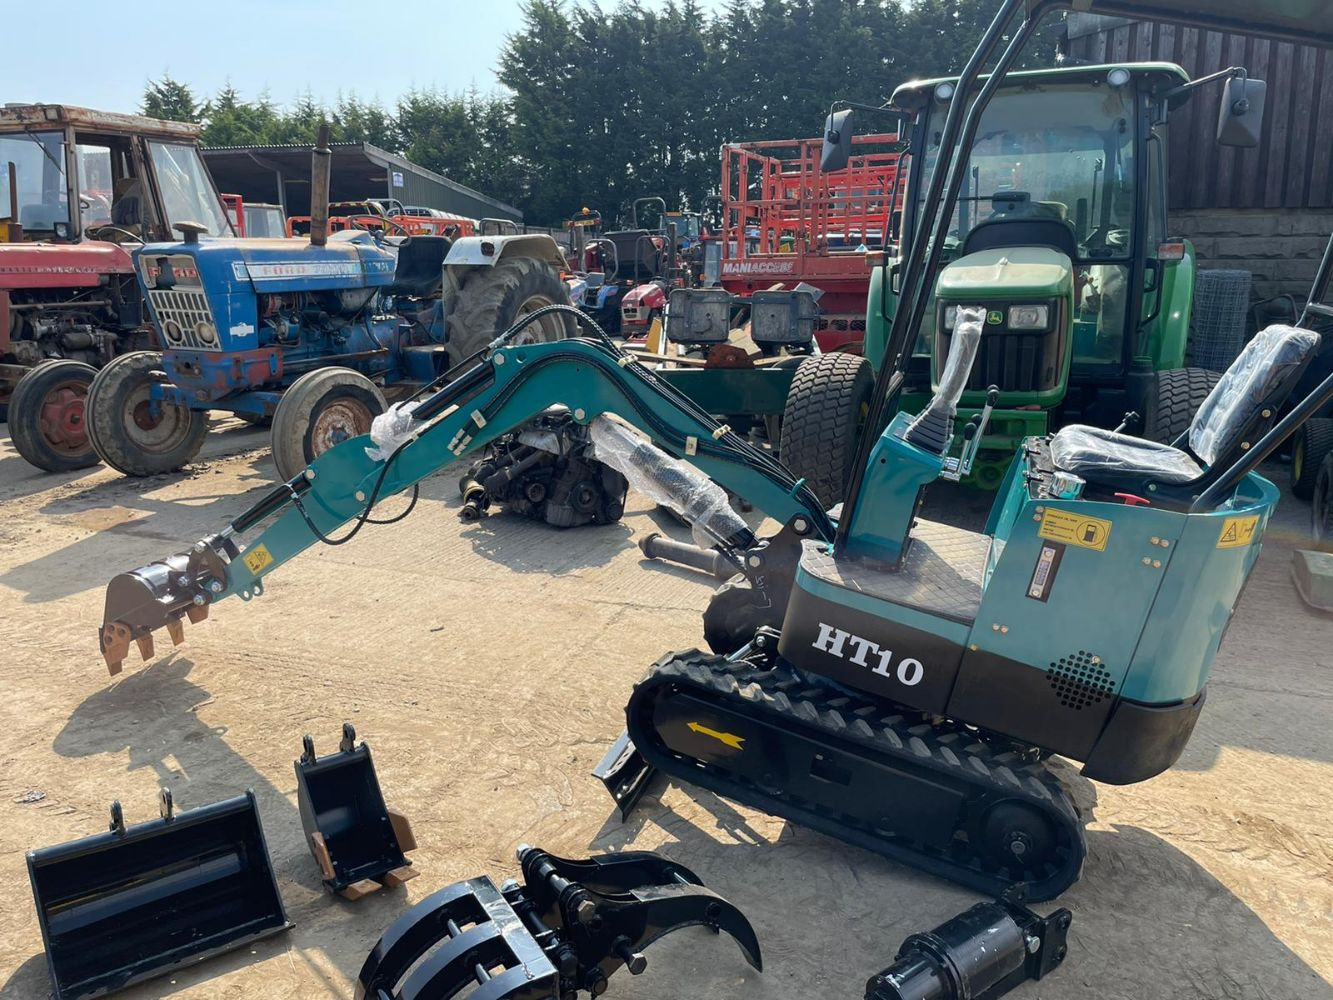 NEW AND UNUSED HIGH TOP HT10 MINI EXCAVATOR, VOLVO BM4400 LOADING SHOVEL, KUBOTA TRACTOR WITH FRONT LOADER, ALL ENDING FROM 7PM TUESDAY!